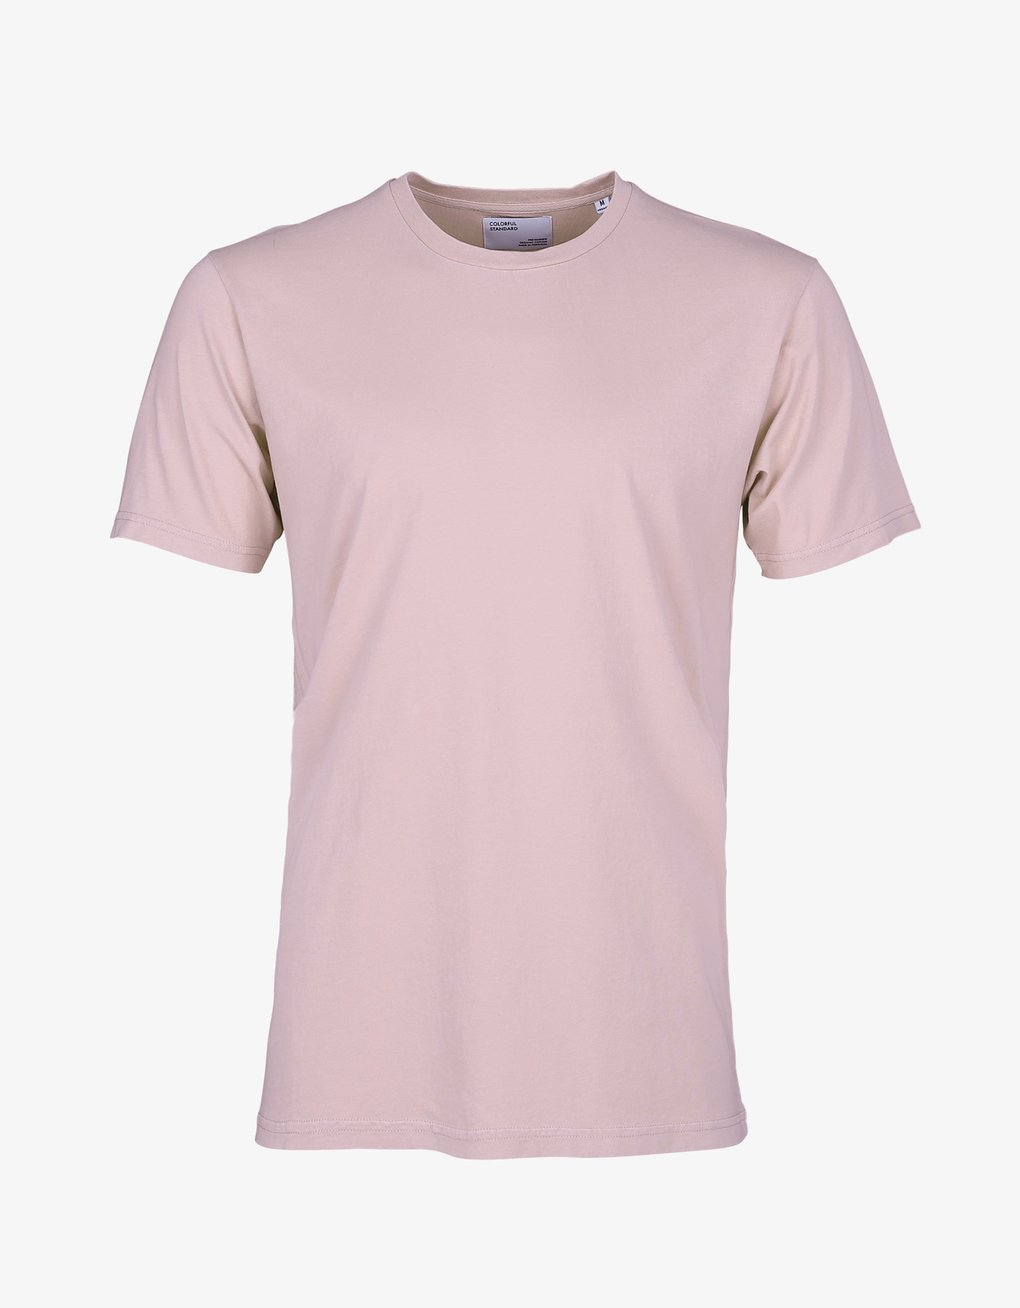 Unisex Classic Organic Tee - Faded Pink